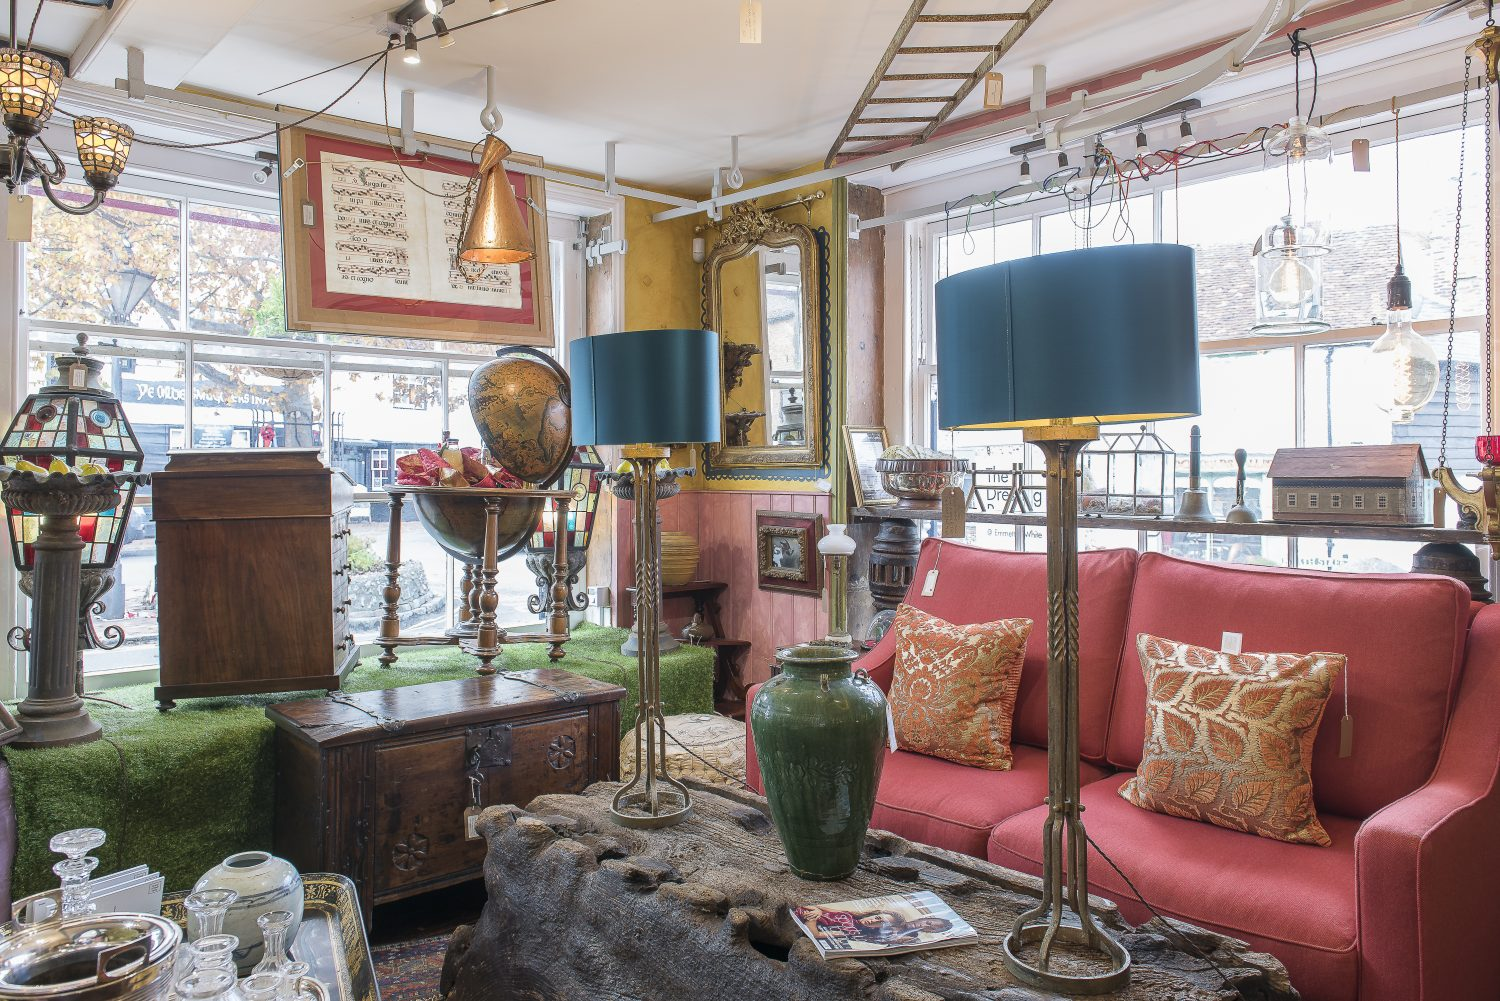 Will and Nick's antiques shop underneath the flat was initially opened to sell all the things they couldn't fit into their new home from their previous large house